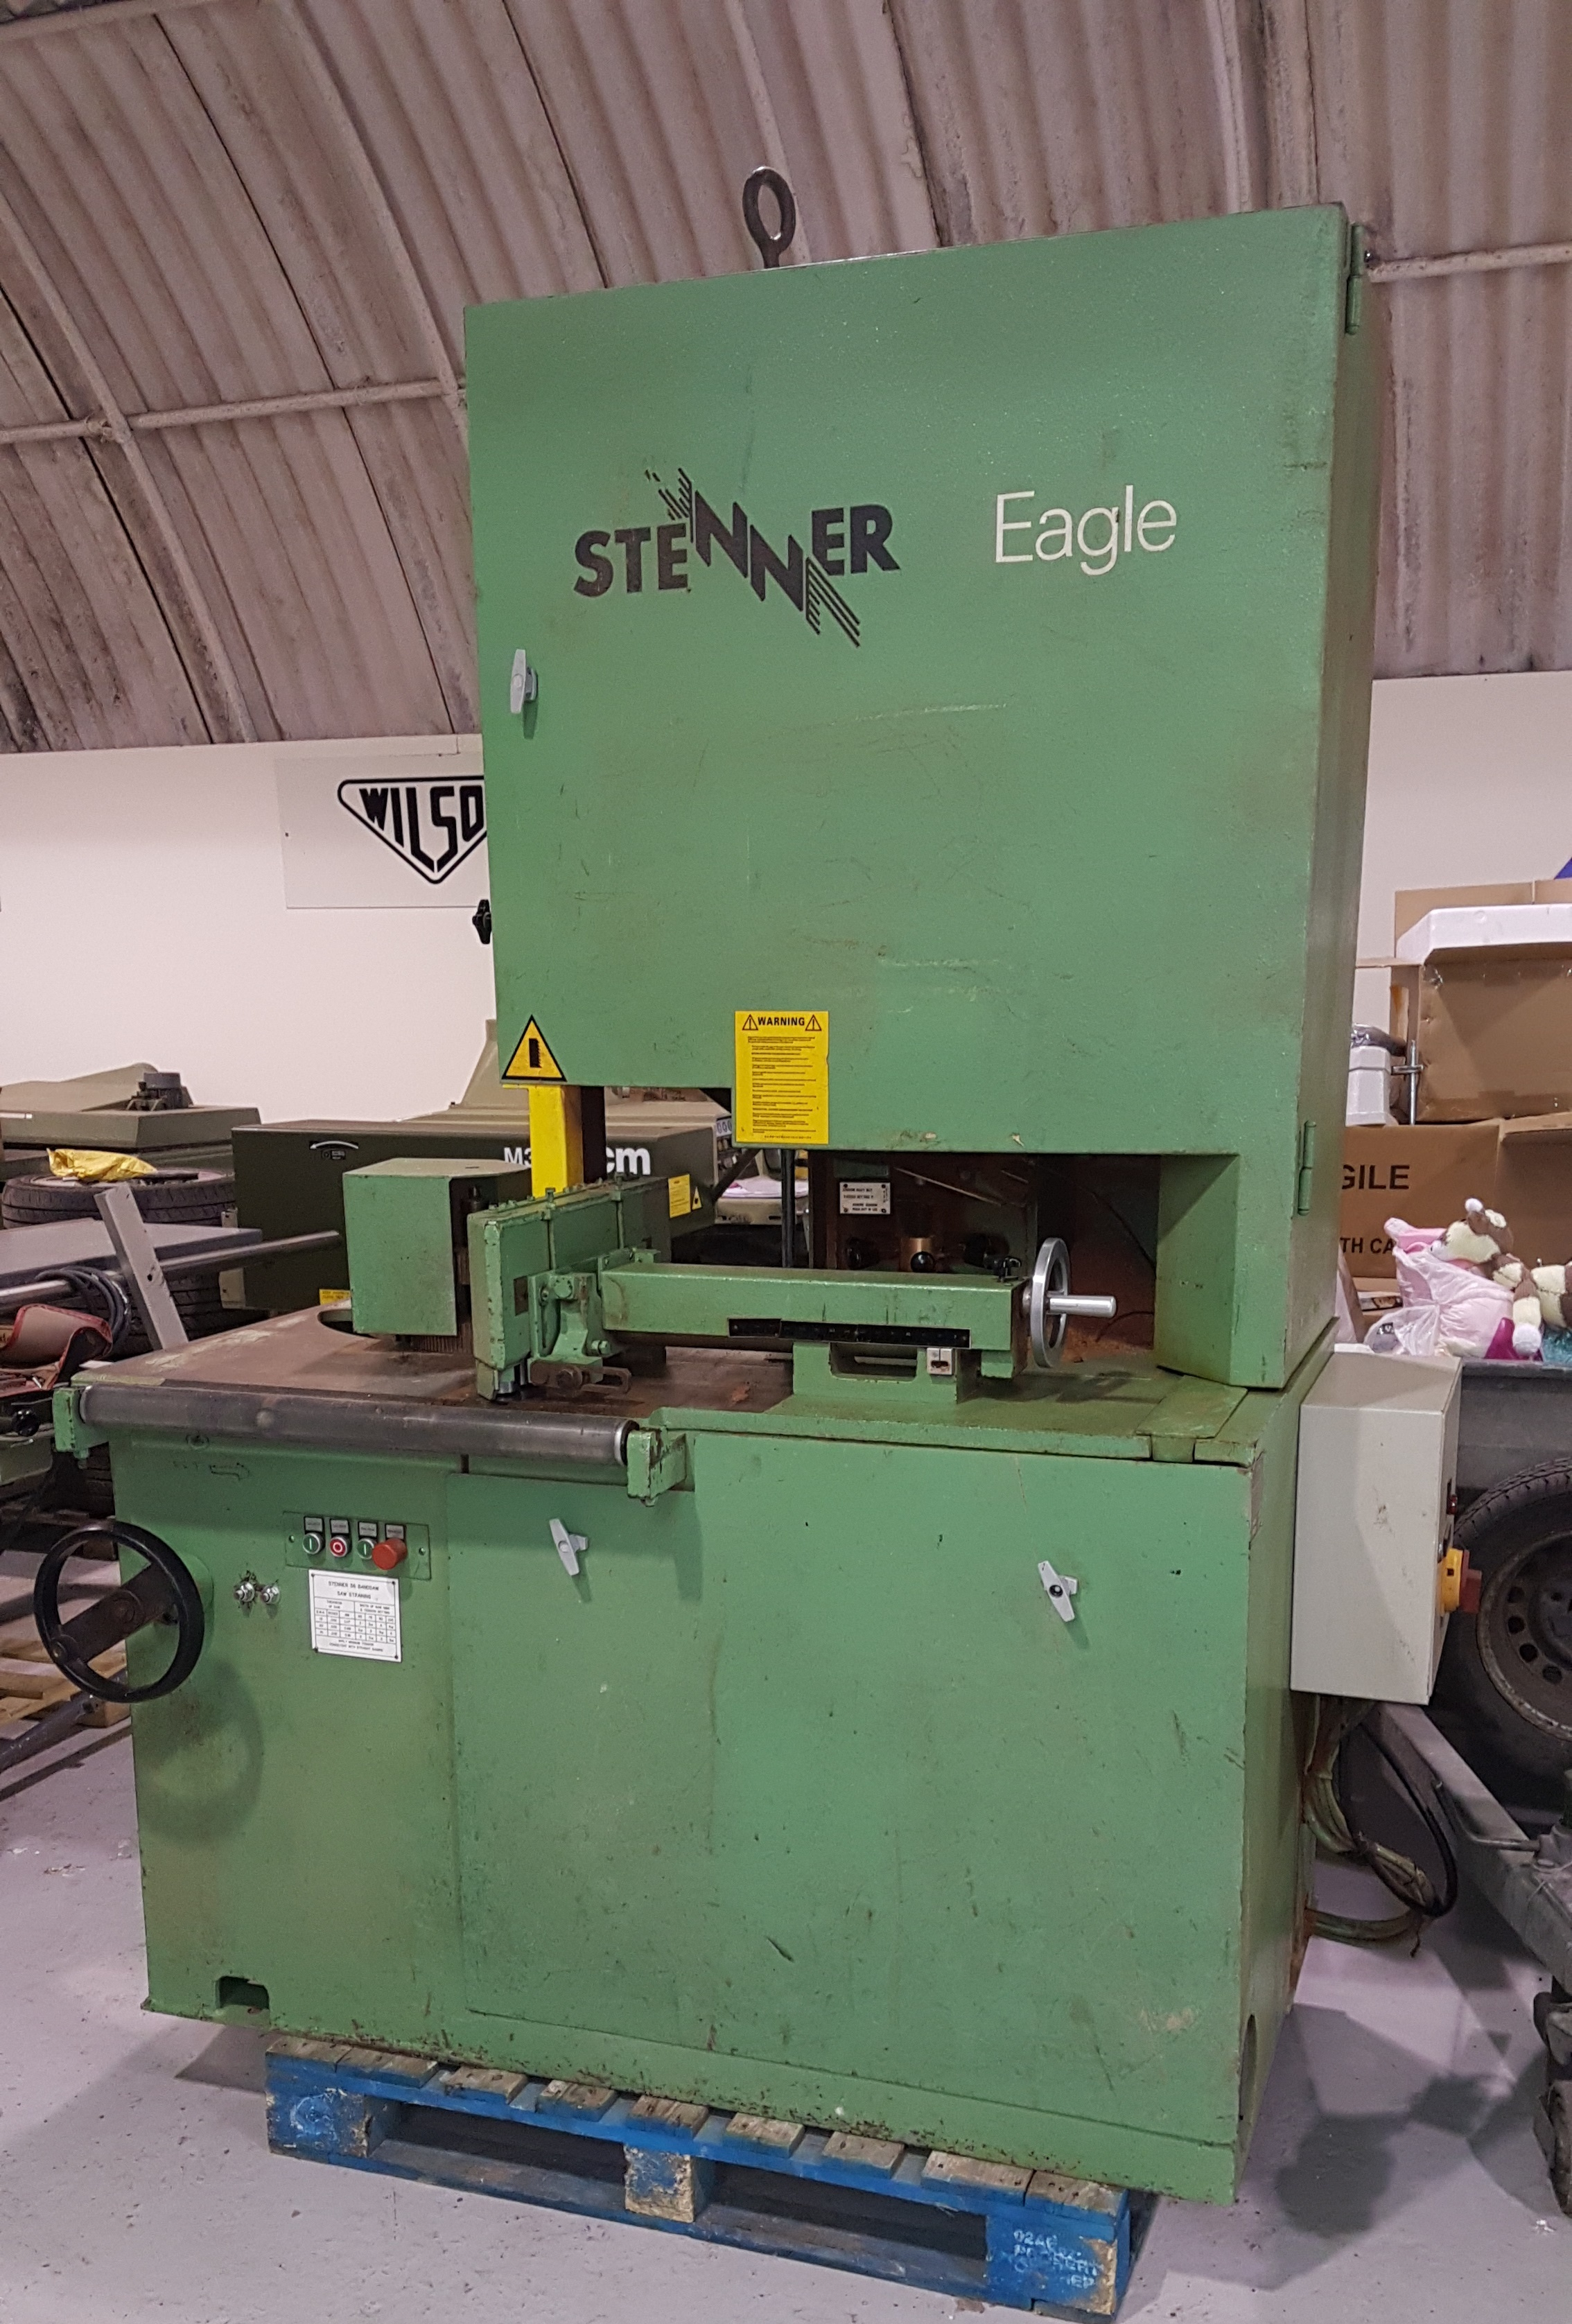 Stenner eagle band resaw woodworking machine